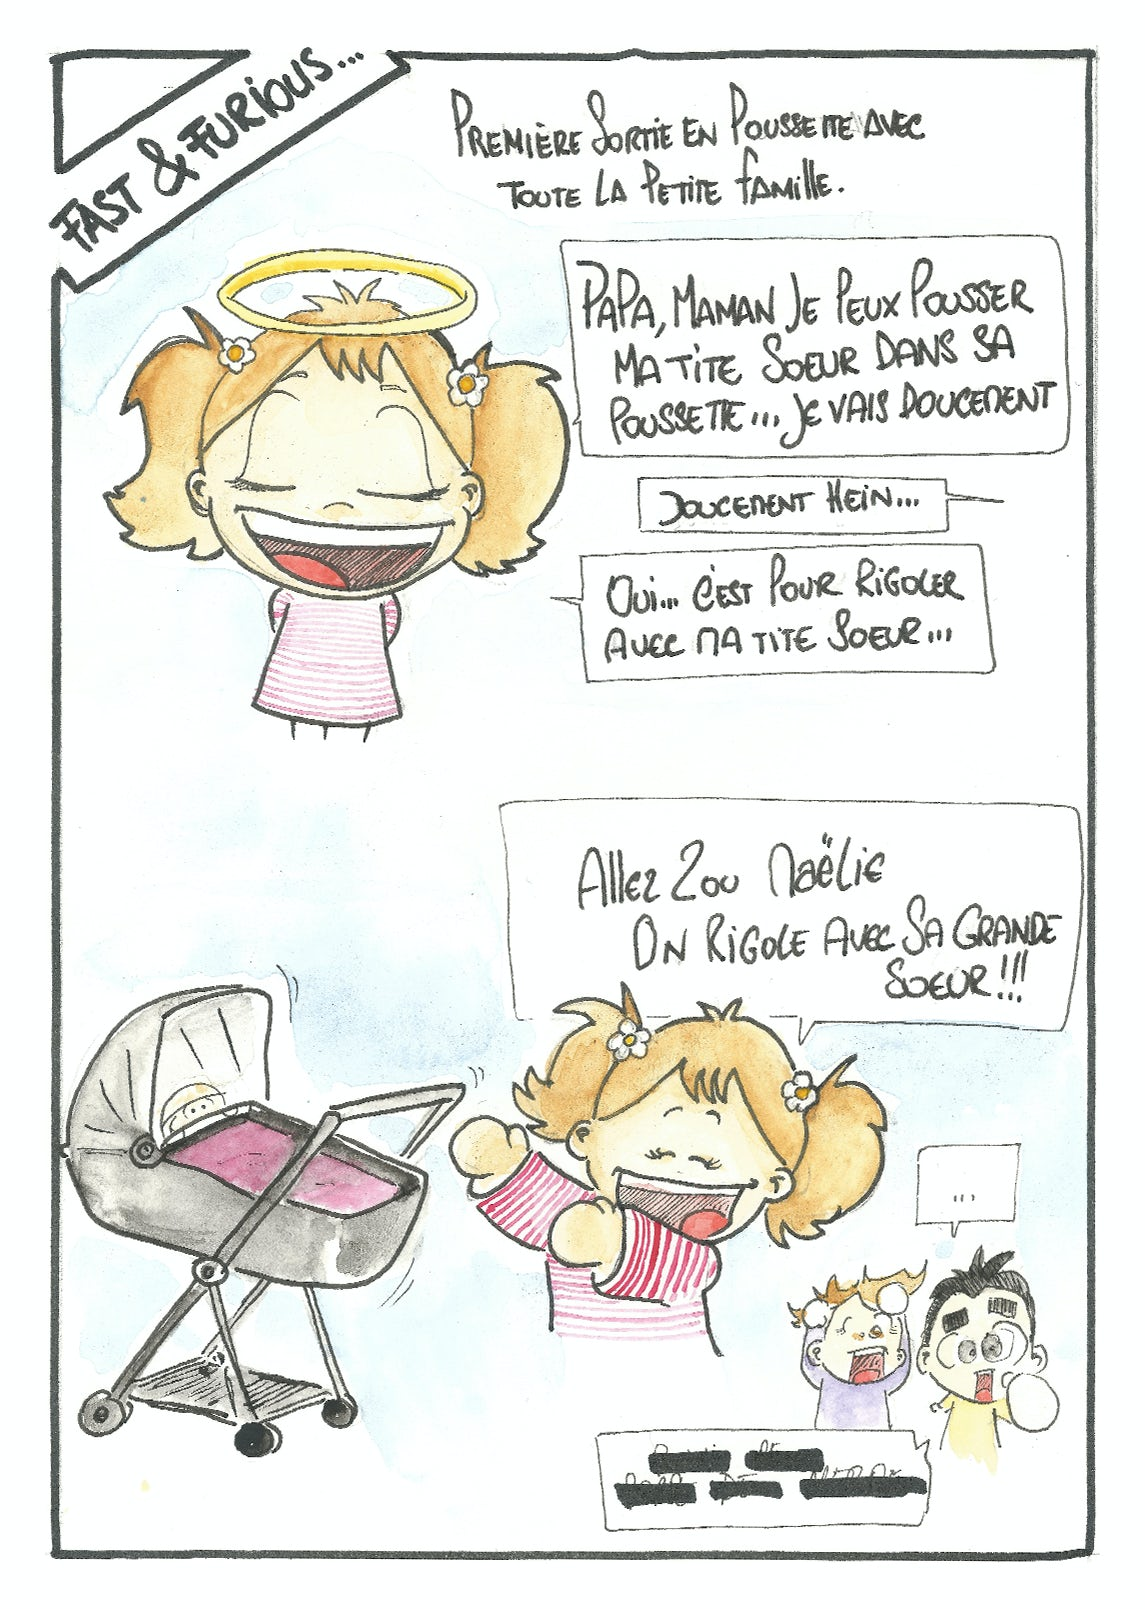 BABYBJÖRN Magazine – Sketch of big sister Luna, who promises to push her little sister around carefully in the stroller.